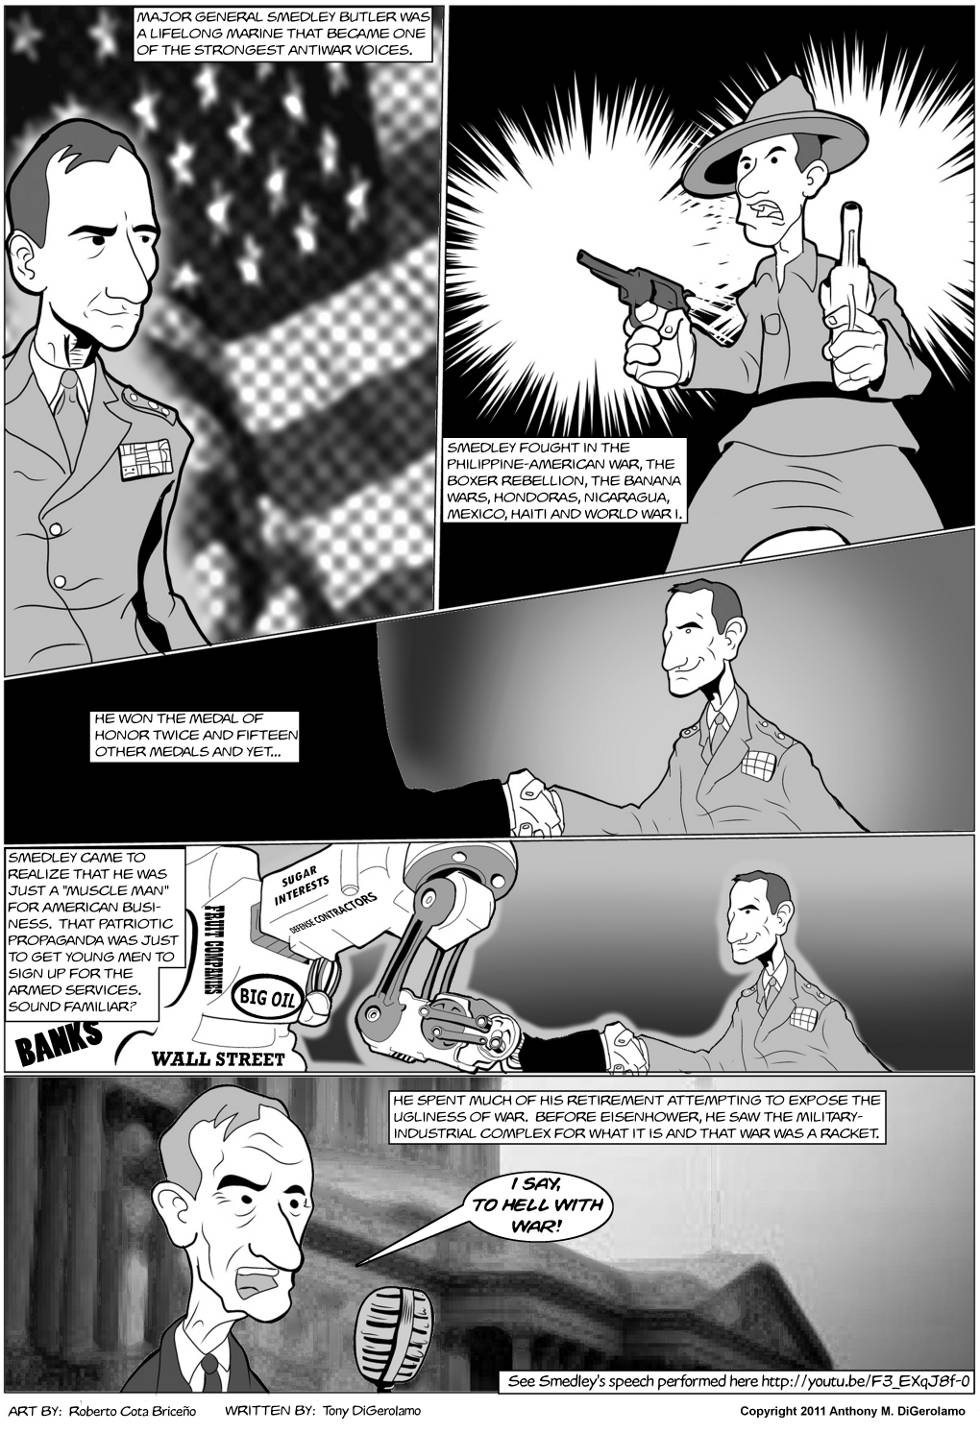 The Antiwar Comic:  The General That Hated War